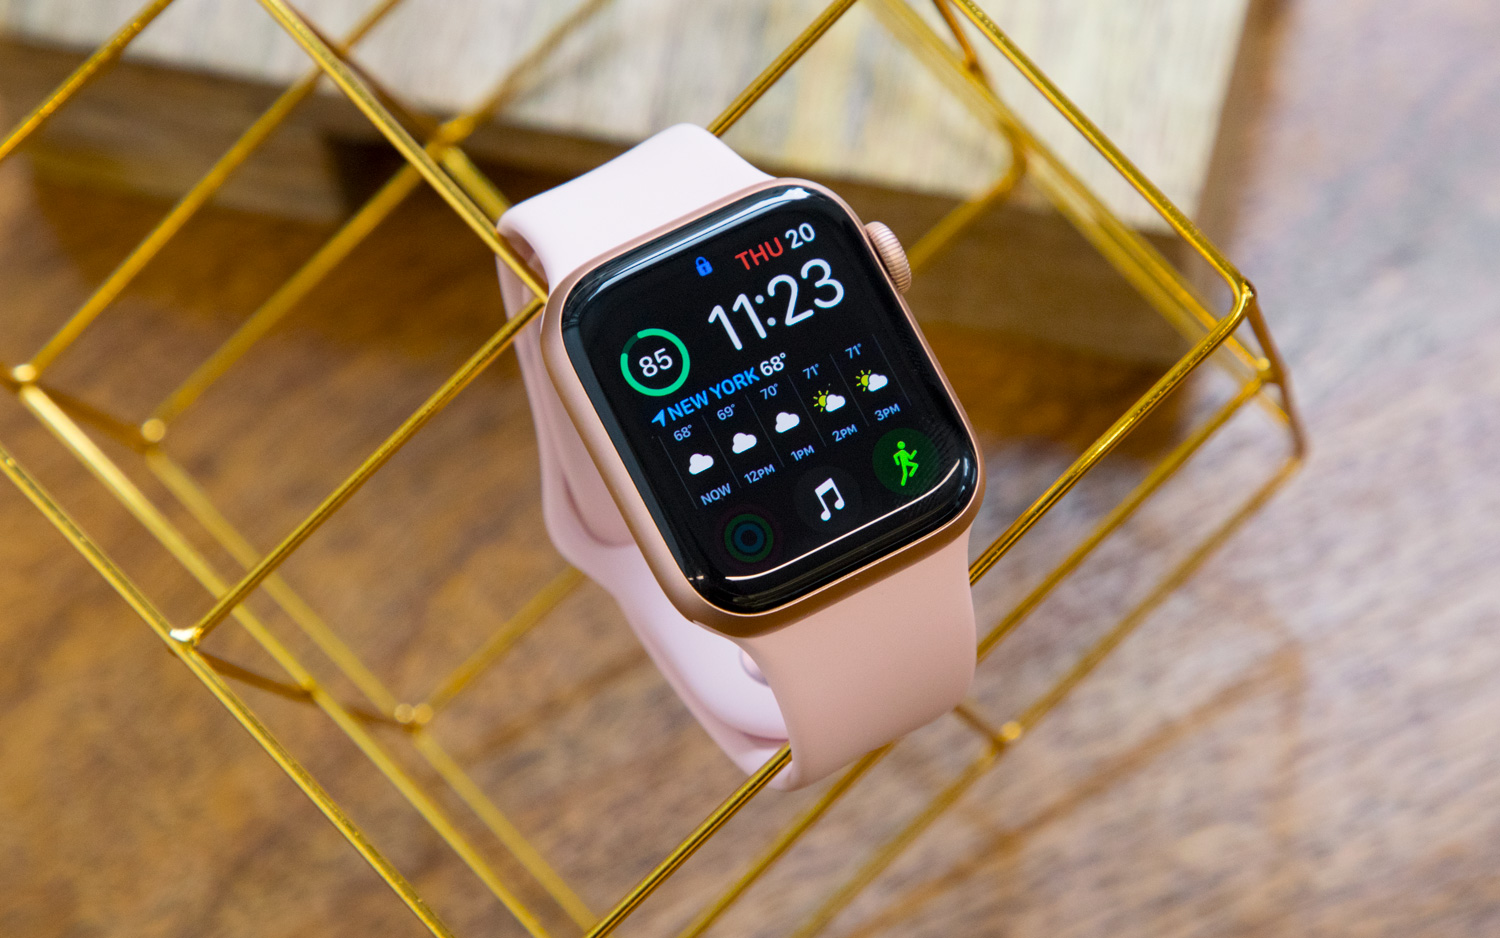 e25d720b423 Apple Watch 5: Rumors, Release Date, Price, Features and More ...